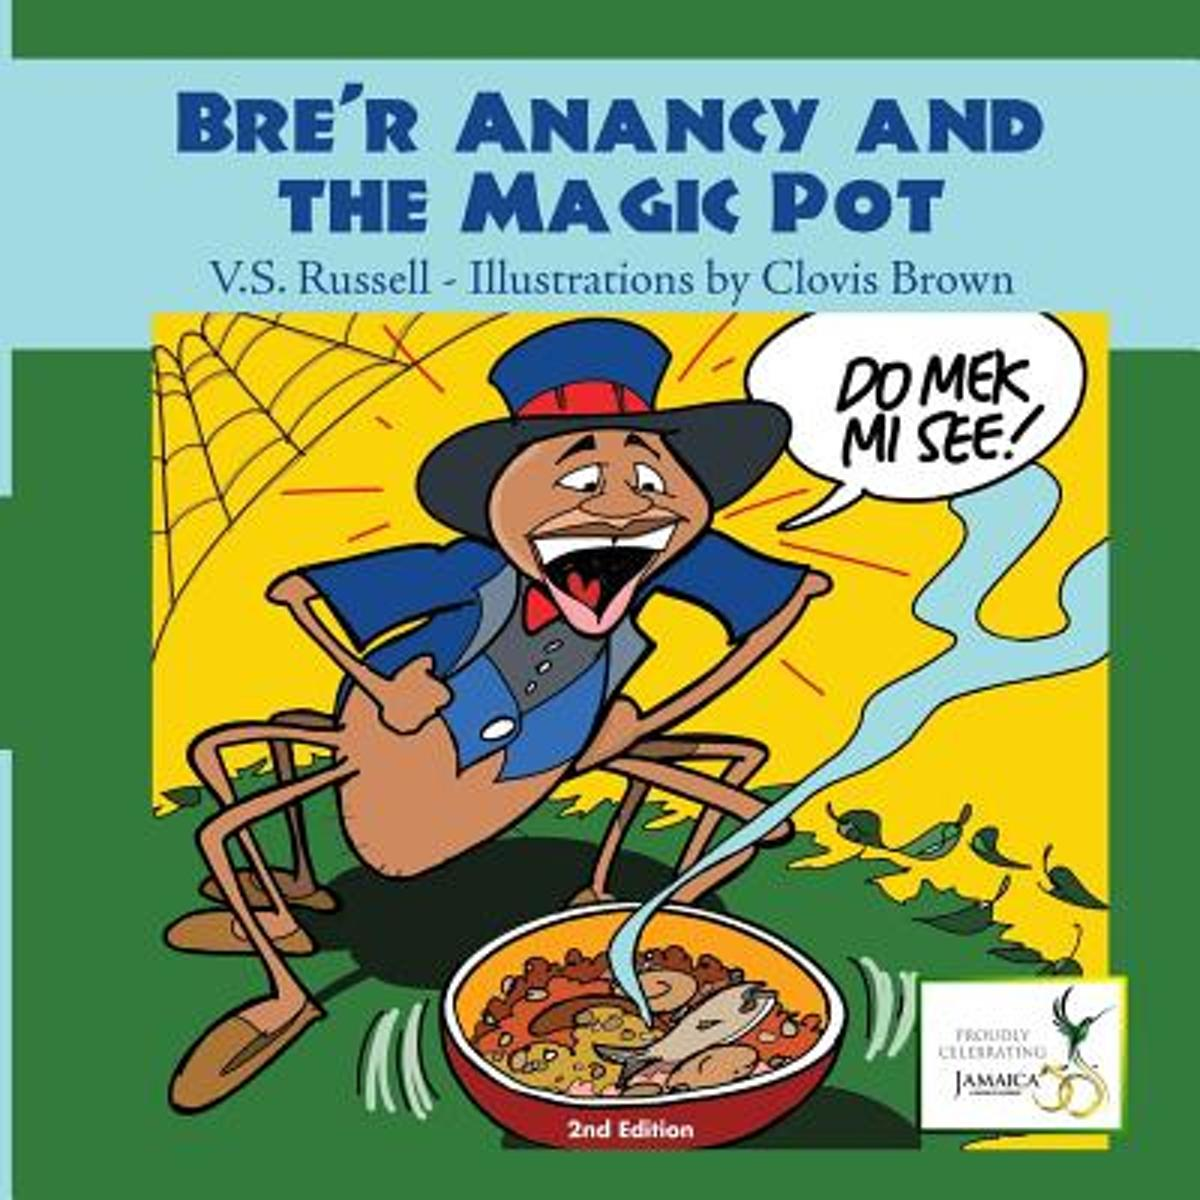 Bre'r Anancy and the Magic Pot